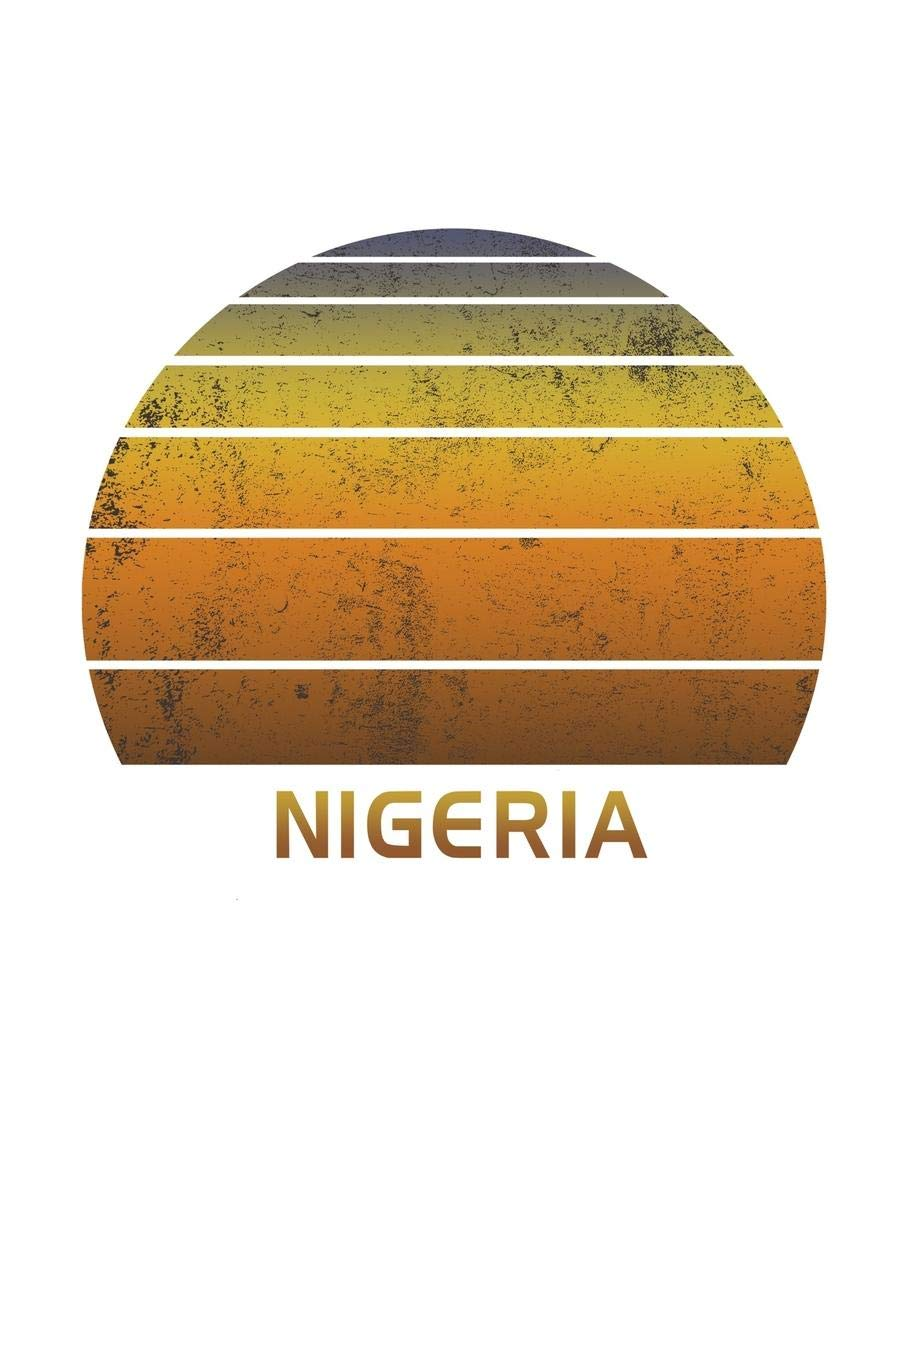 Amazon com: Nigeria: Africa Dot Grid Notebook Paper For Work